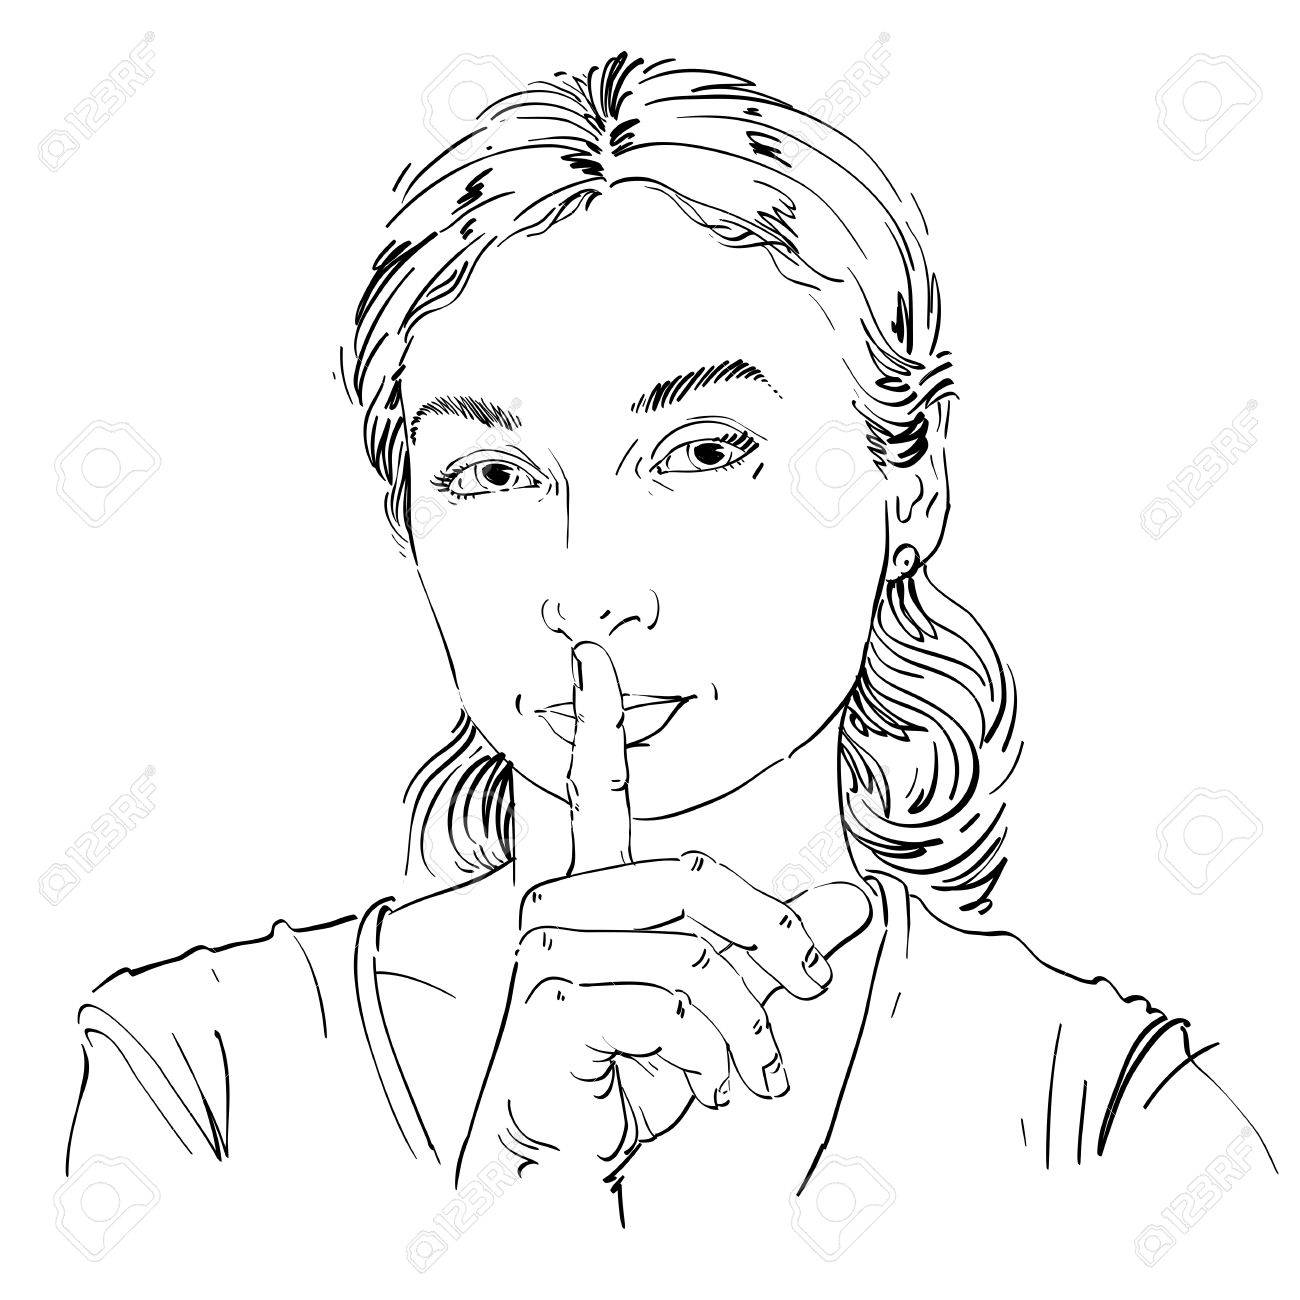 1300x1300 Vector Art Drawing, Portrait Of Peaceful Girl Making A Hush Sign